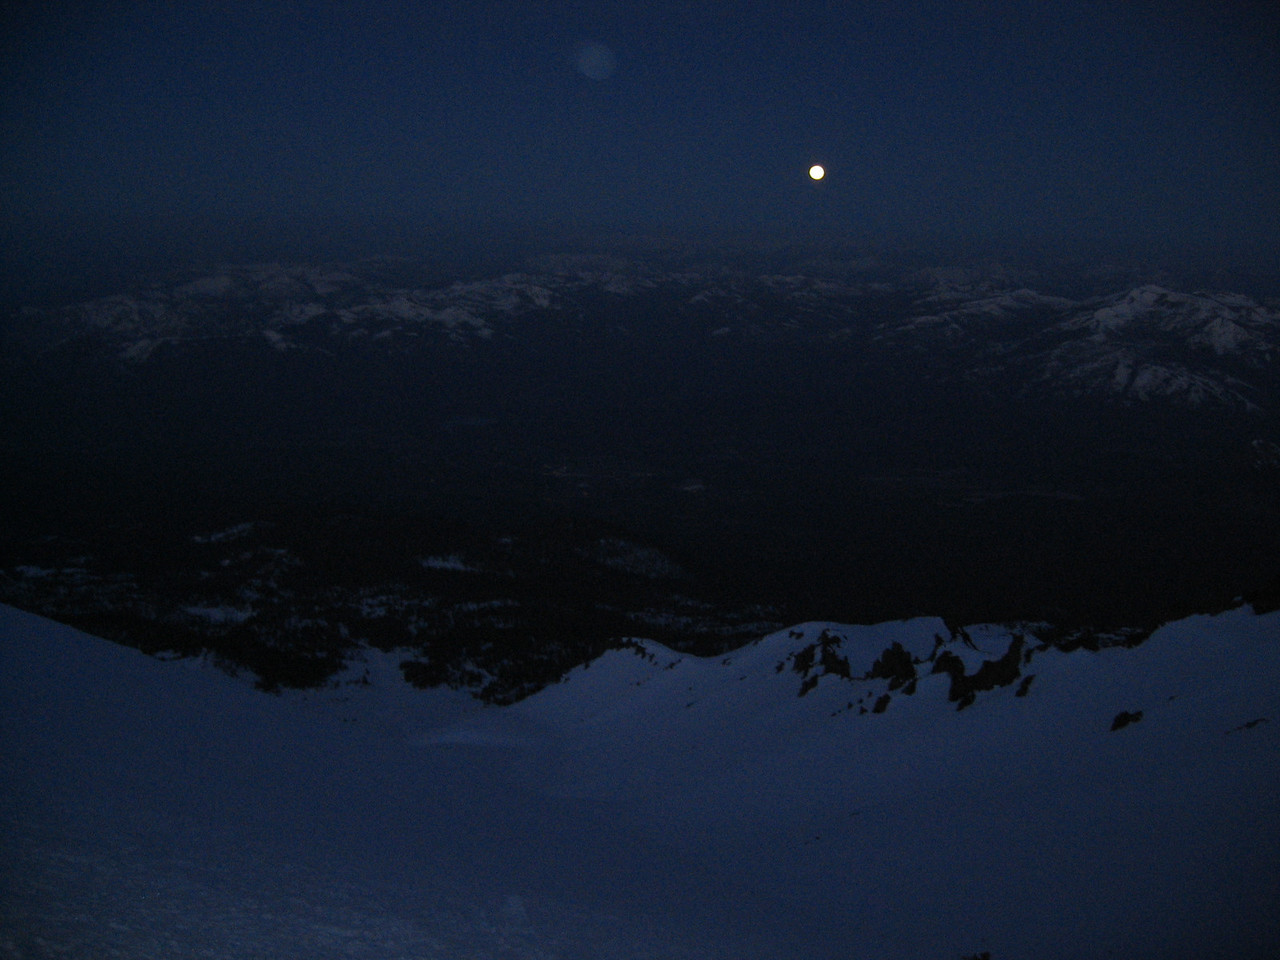 Moon setting in the trinity alps...you could see Mt. Thompson, Mt. Gibson, and the rest of the alps clearly.